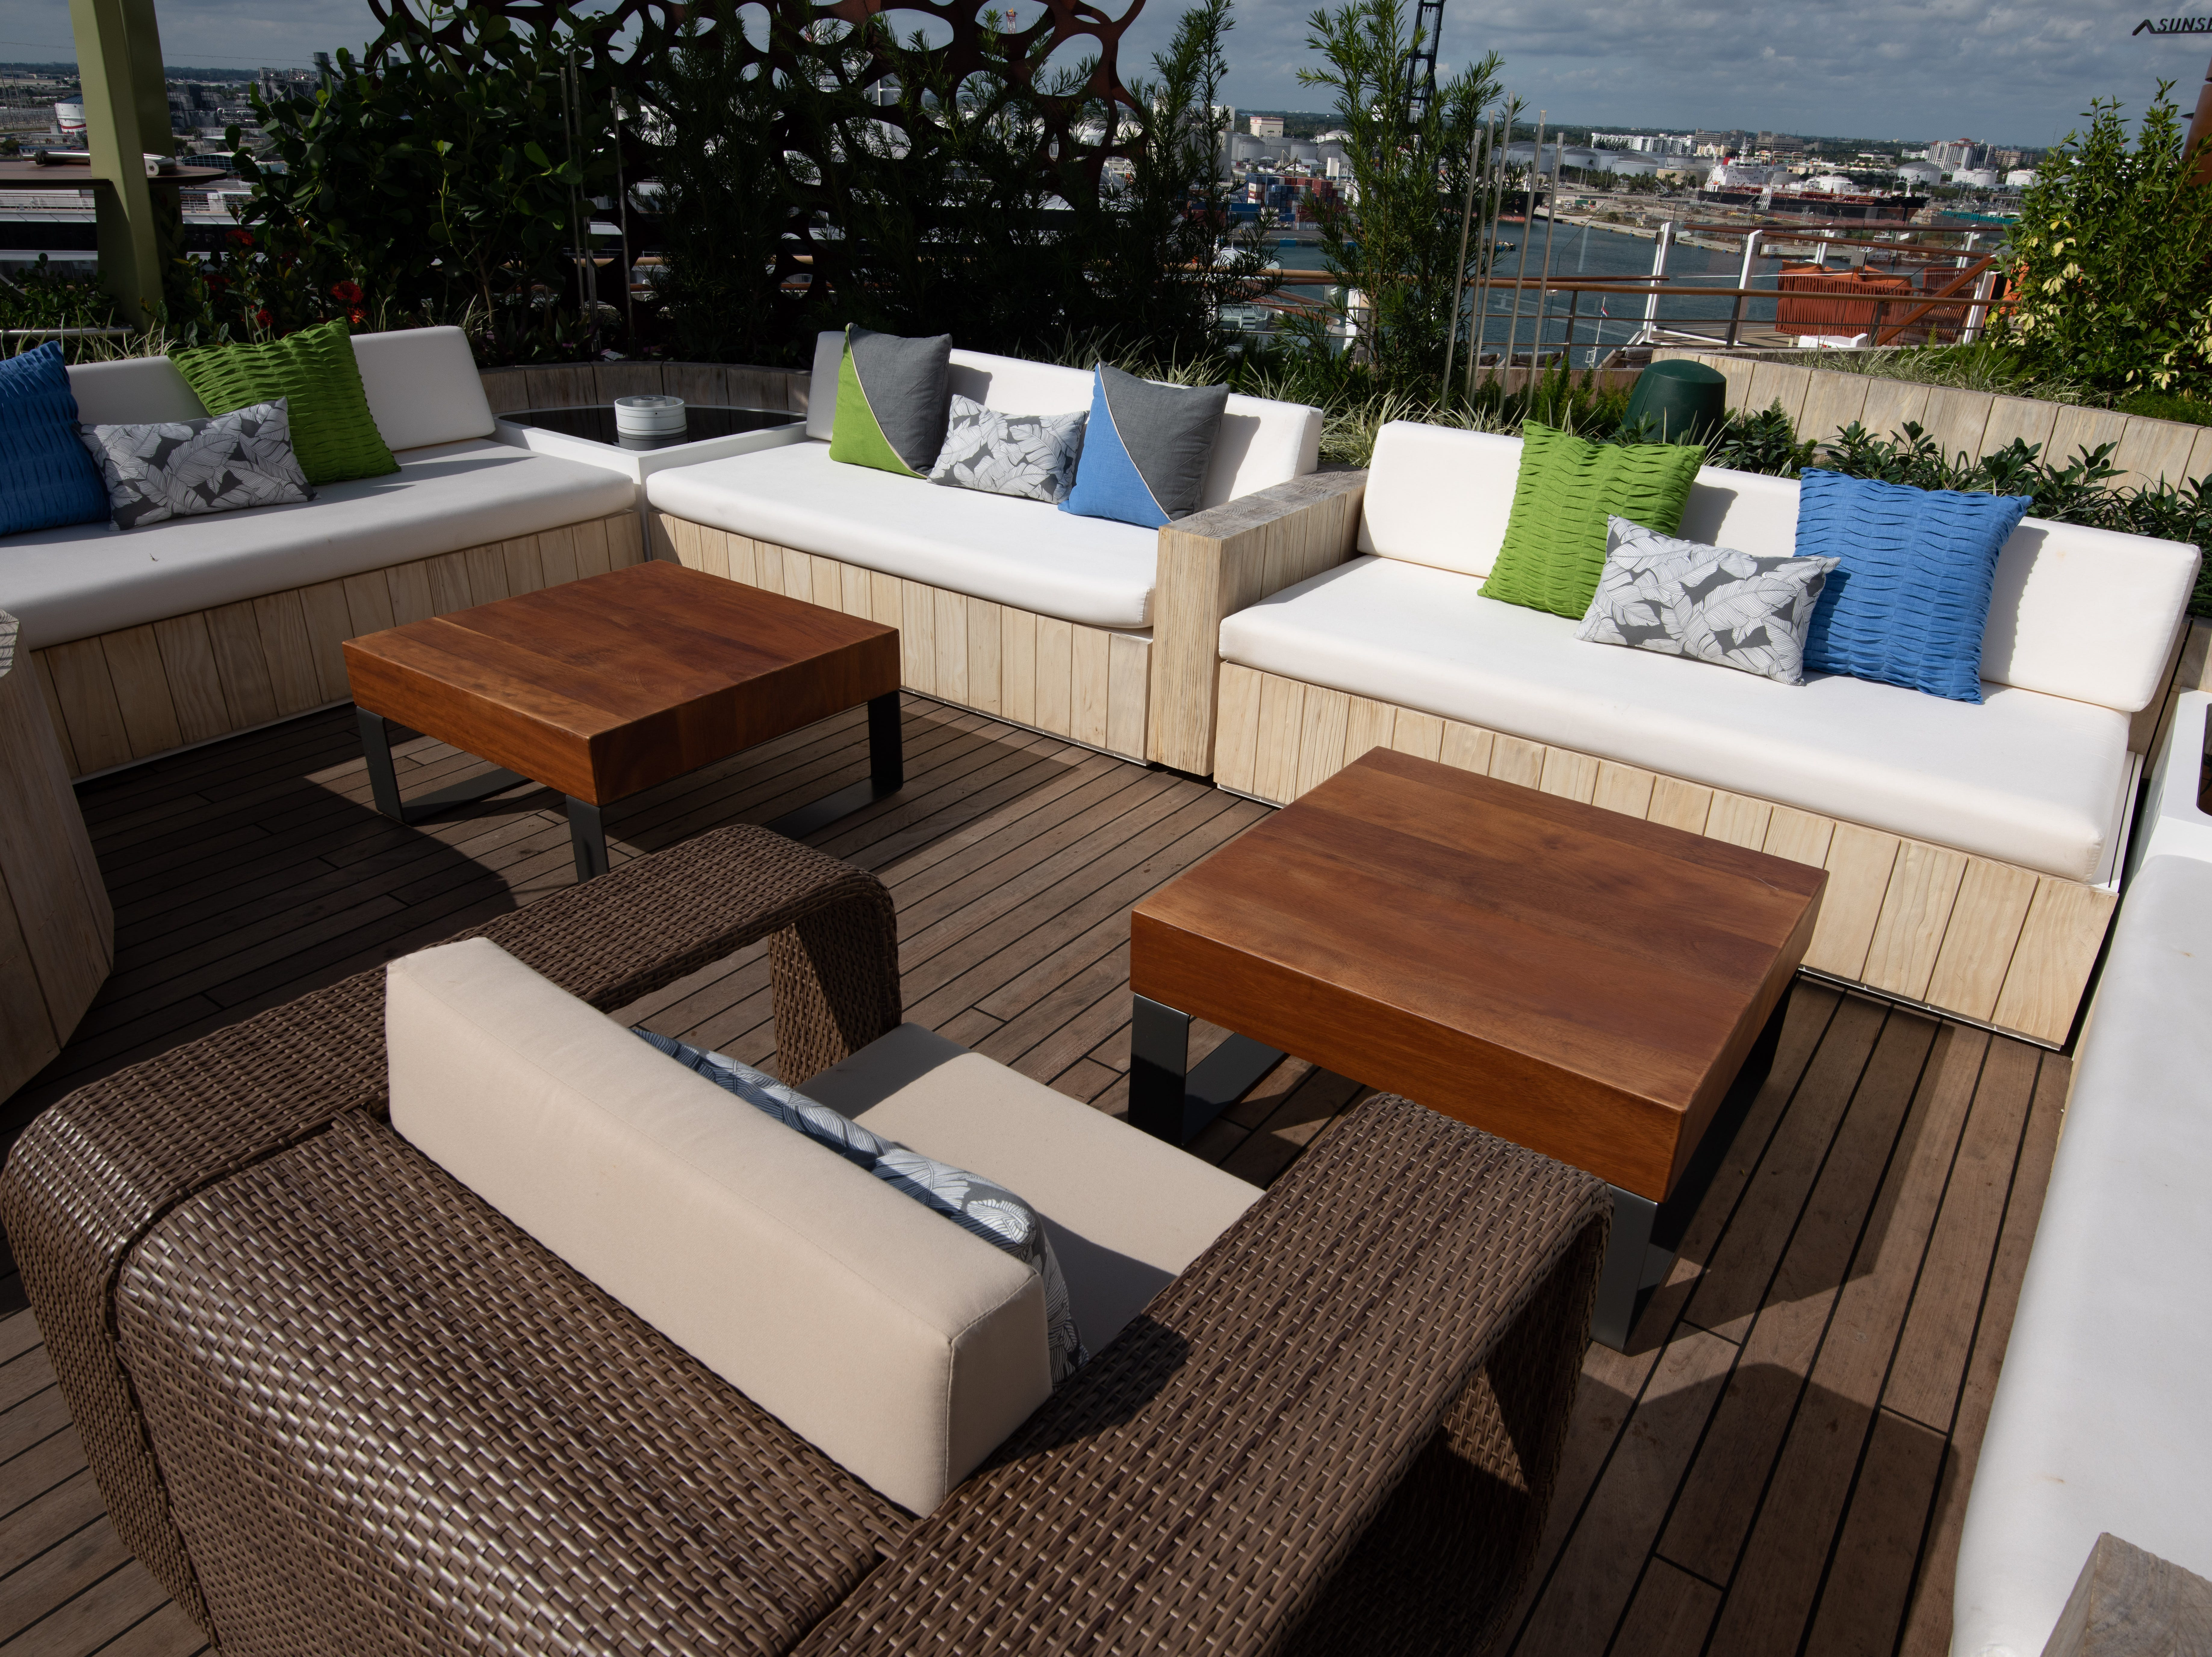 A seating area at the Rooftop Garden.